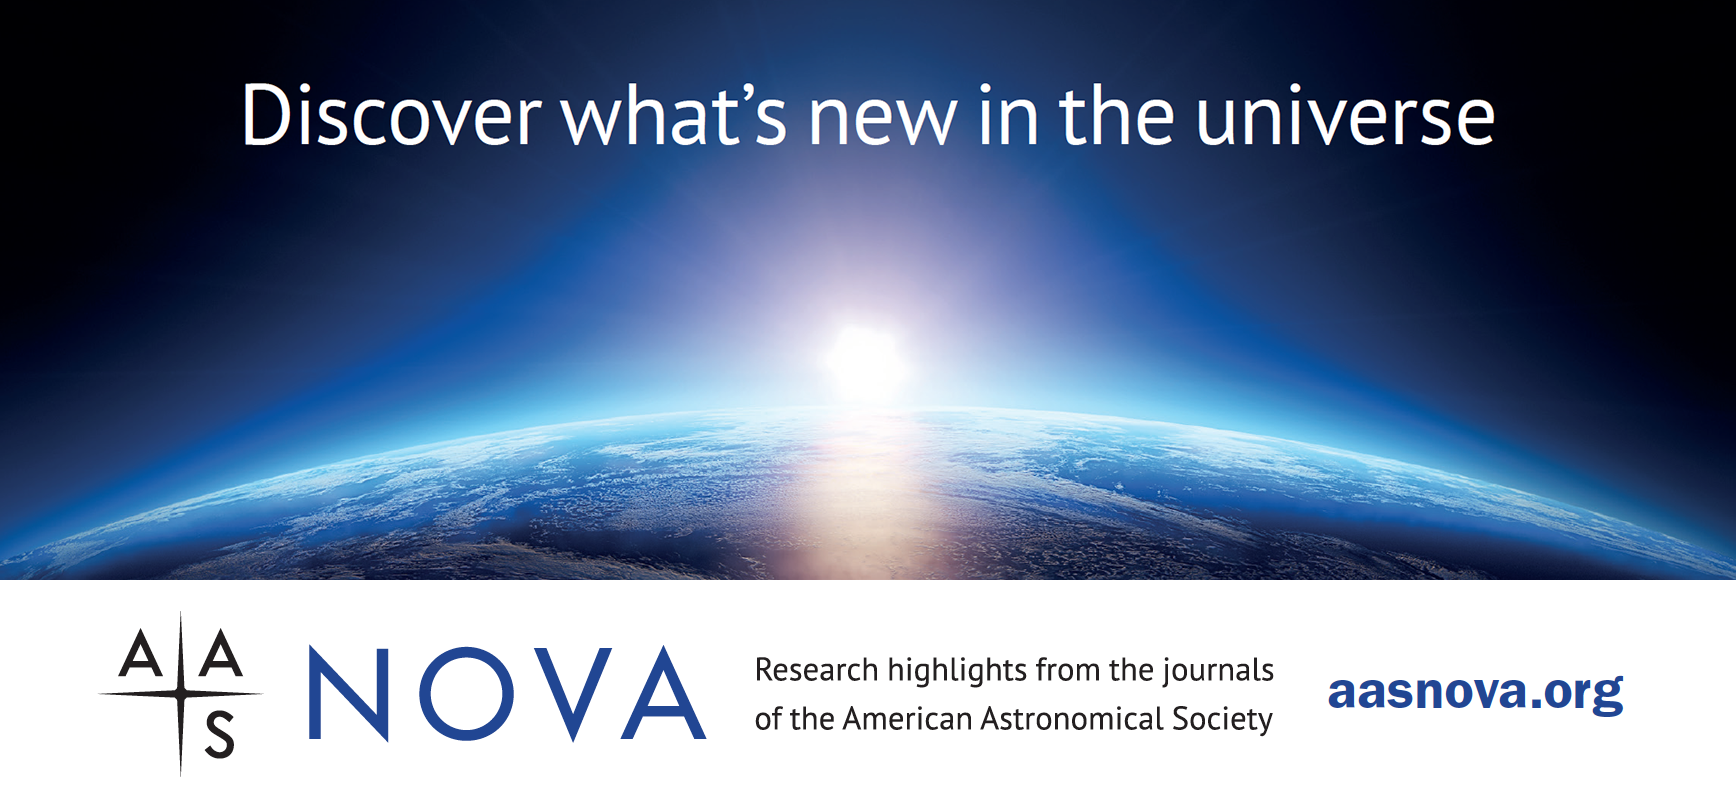 "Image of the Sun rising behind the Earth's horizon with the text ""Discover what's new in the universe"", the AAS Nova logo, and ""aasnova.org"" superposed."